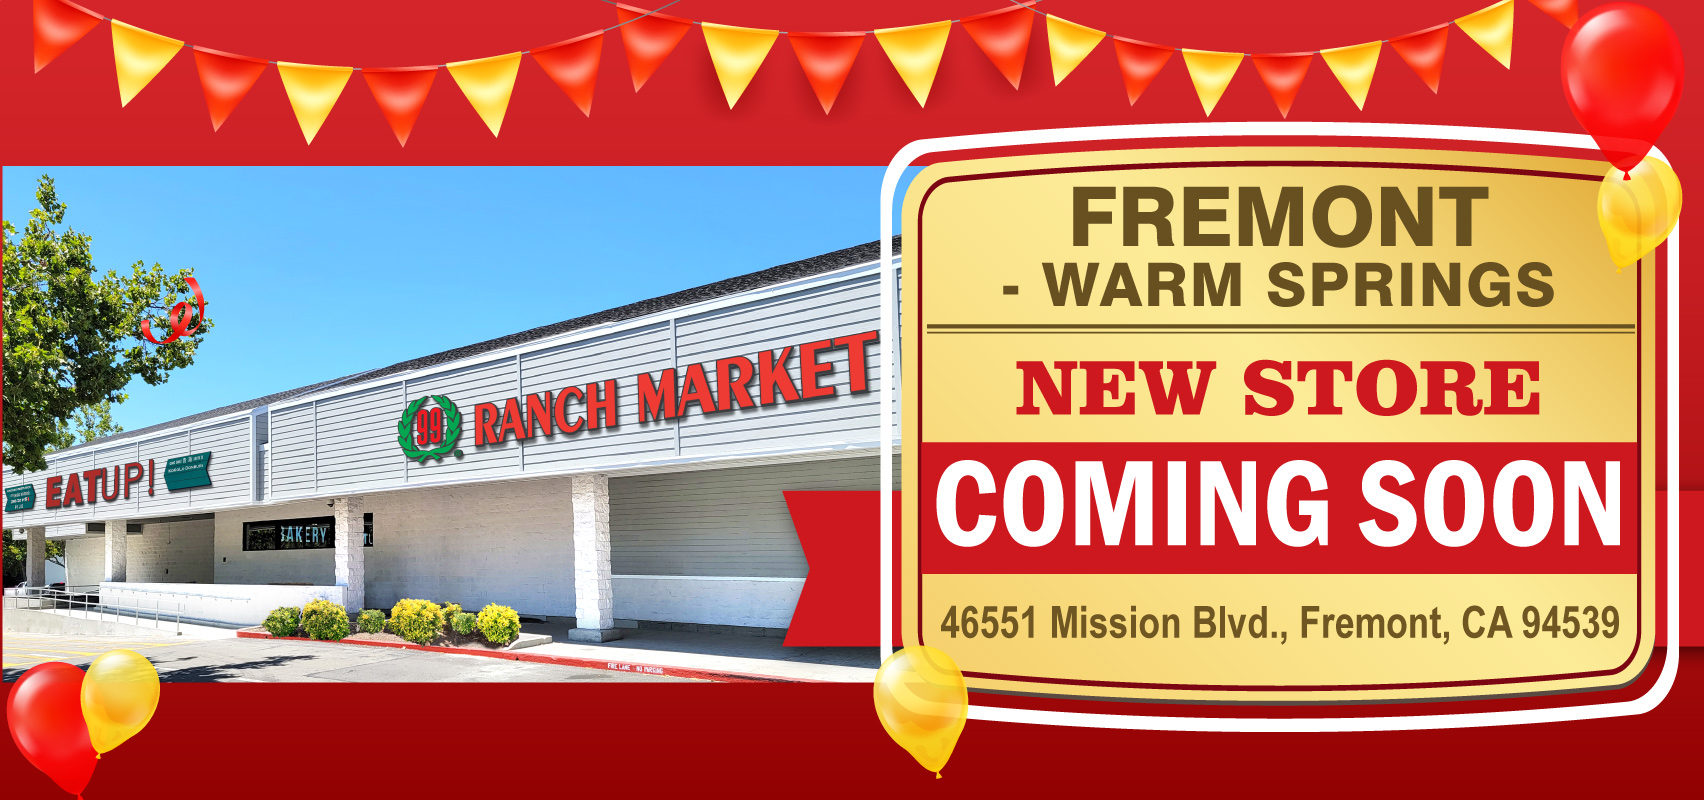 99 Ranch Market is coming soon to the Warm Springs Plaza in Fremont, CA